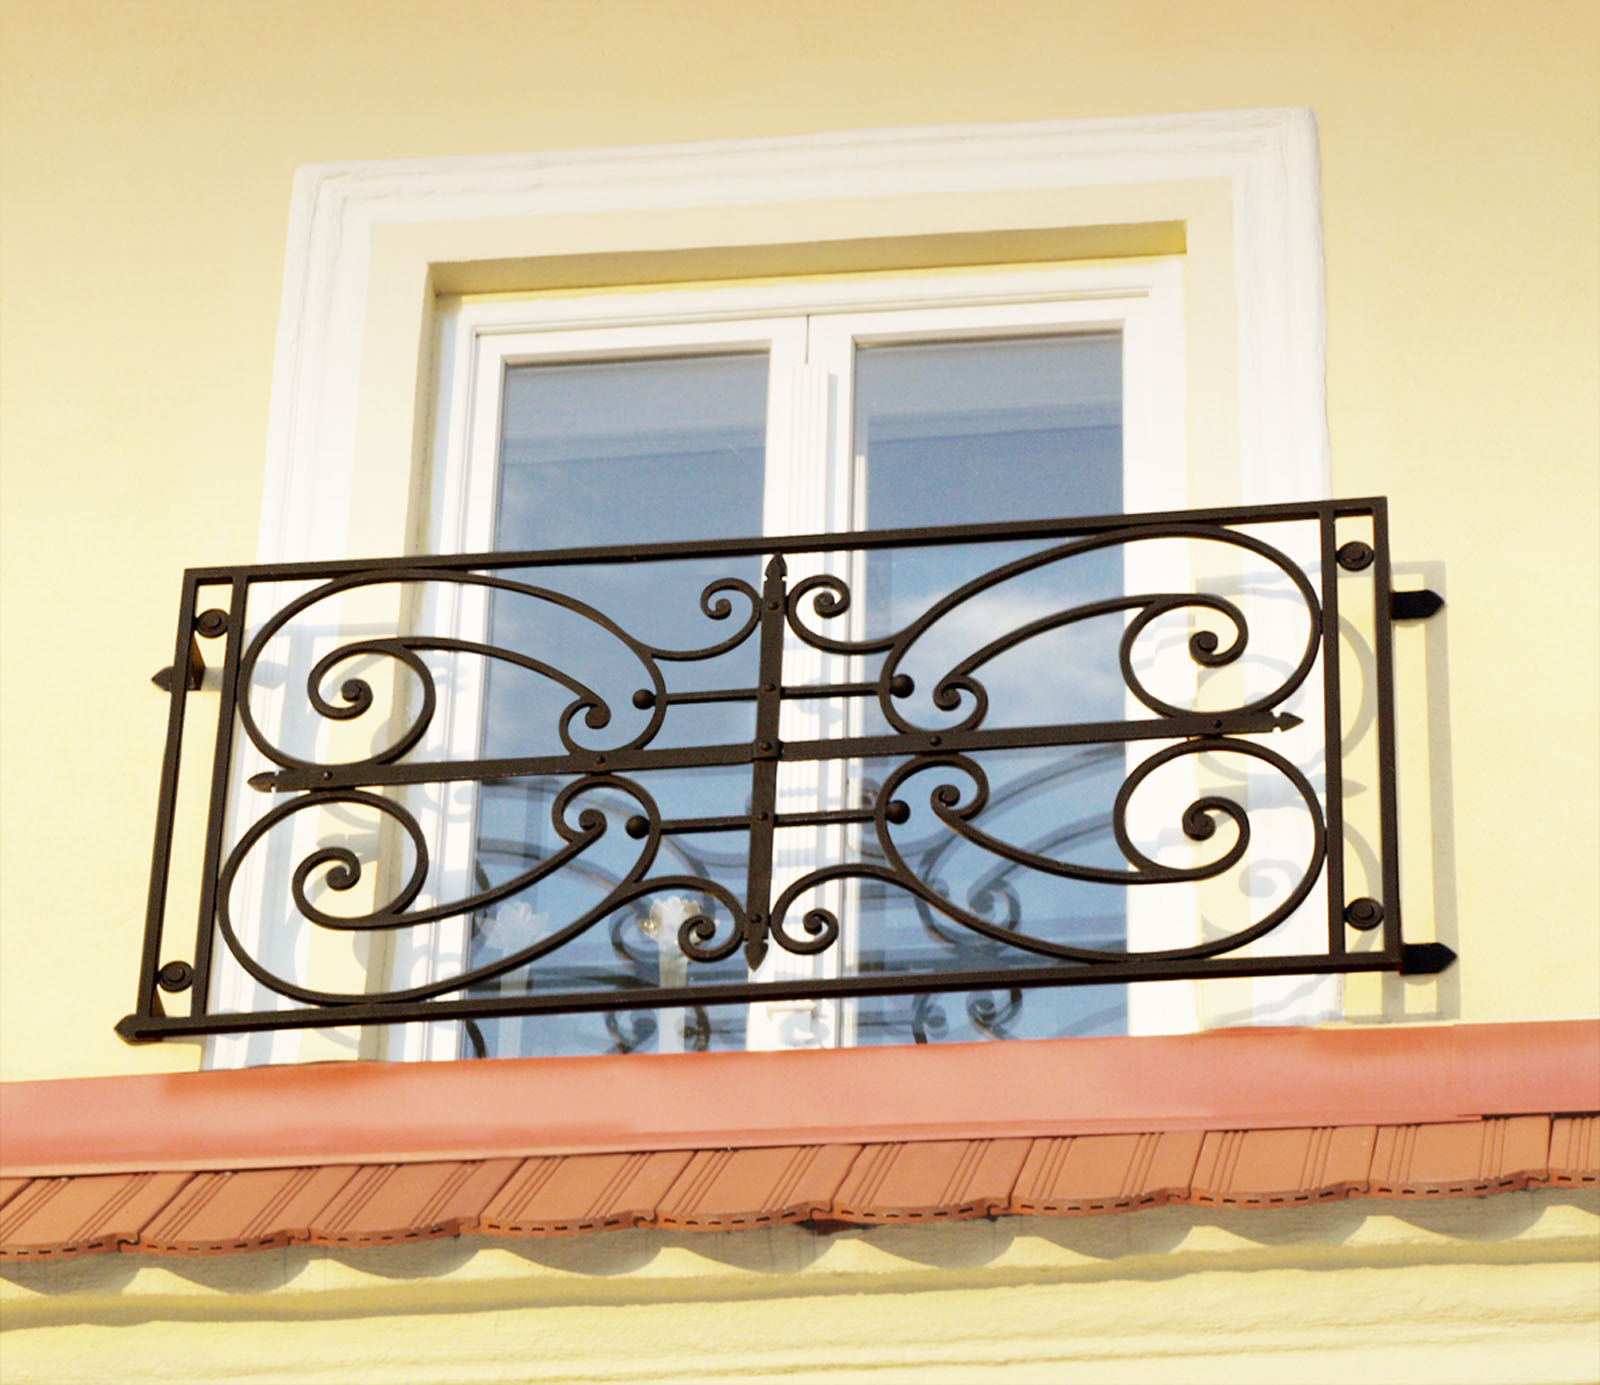 Iron grill of window joy studio design gallery best design for Metal window designs